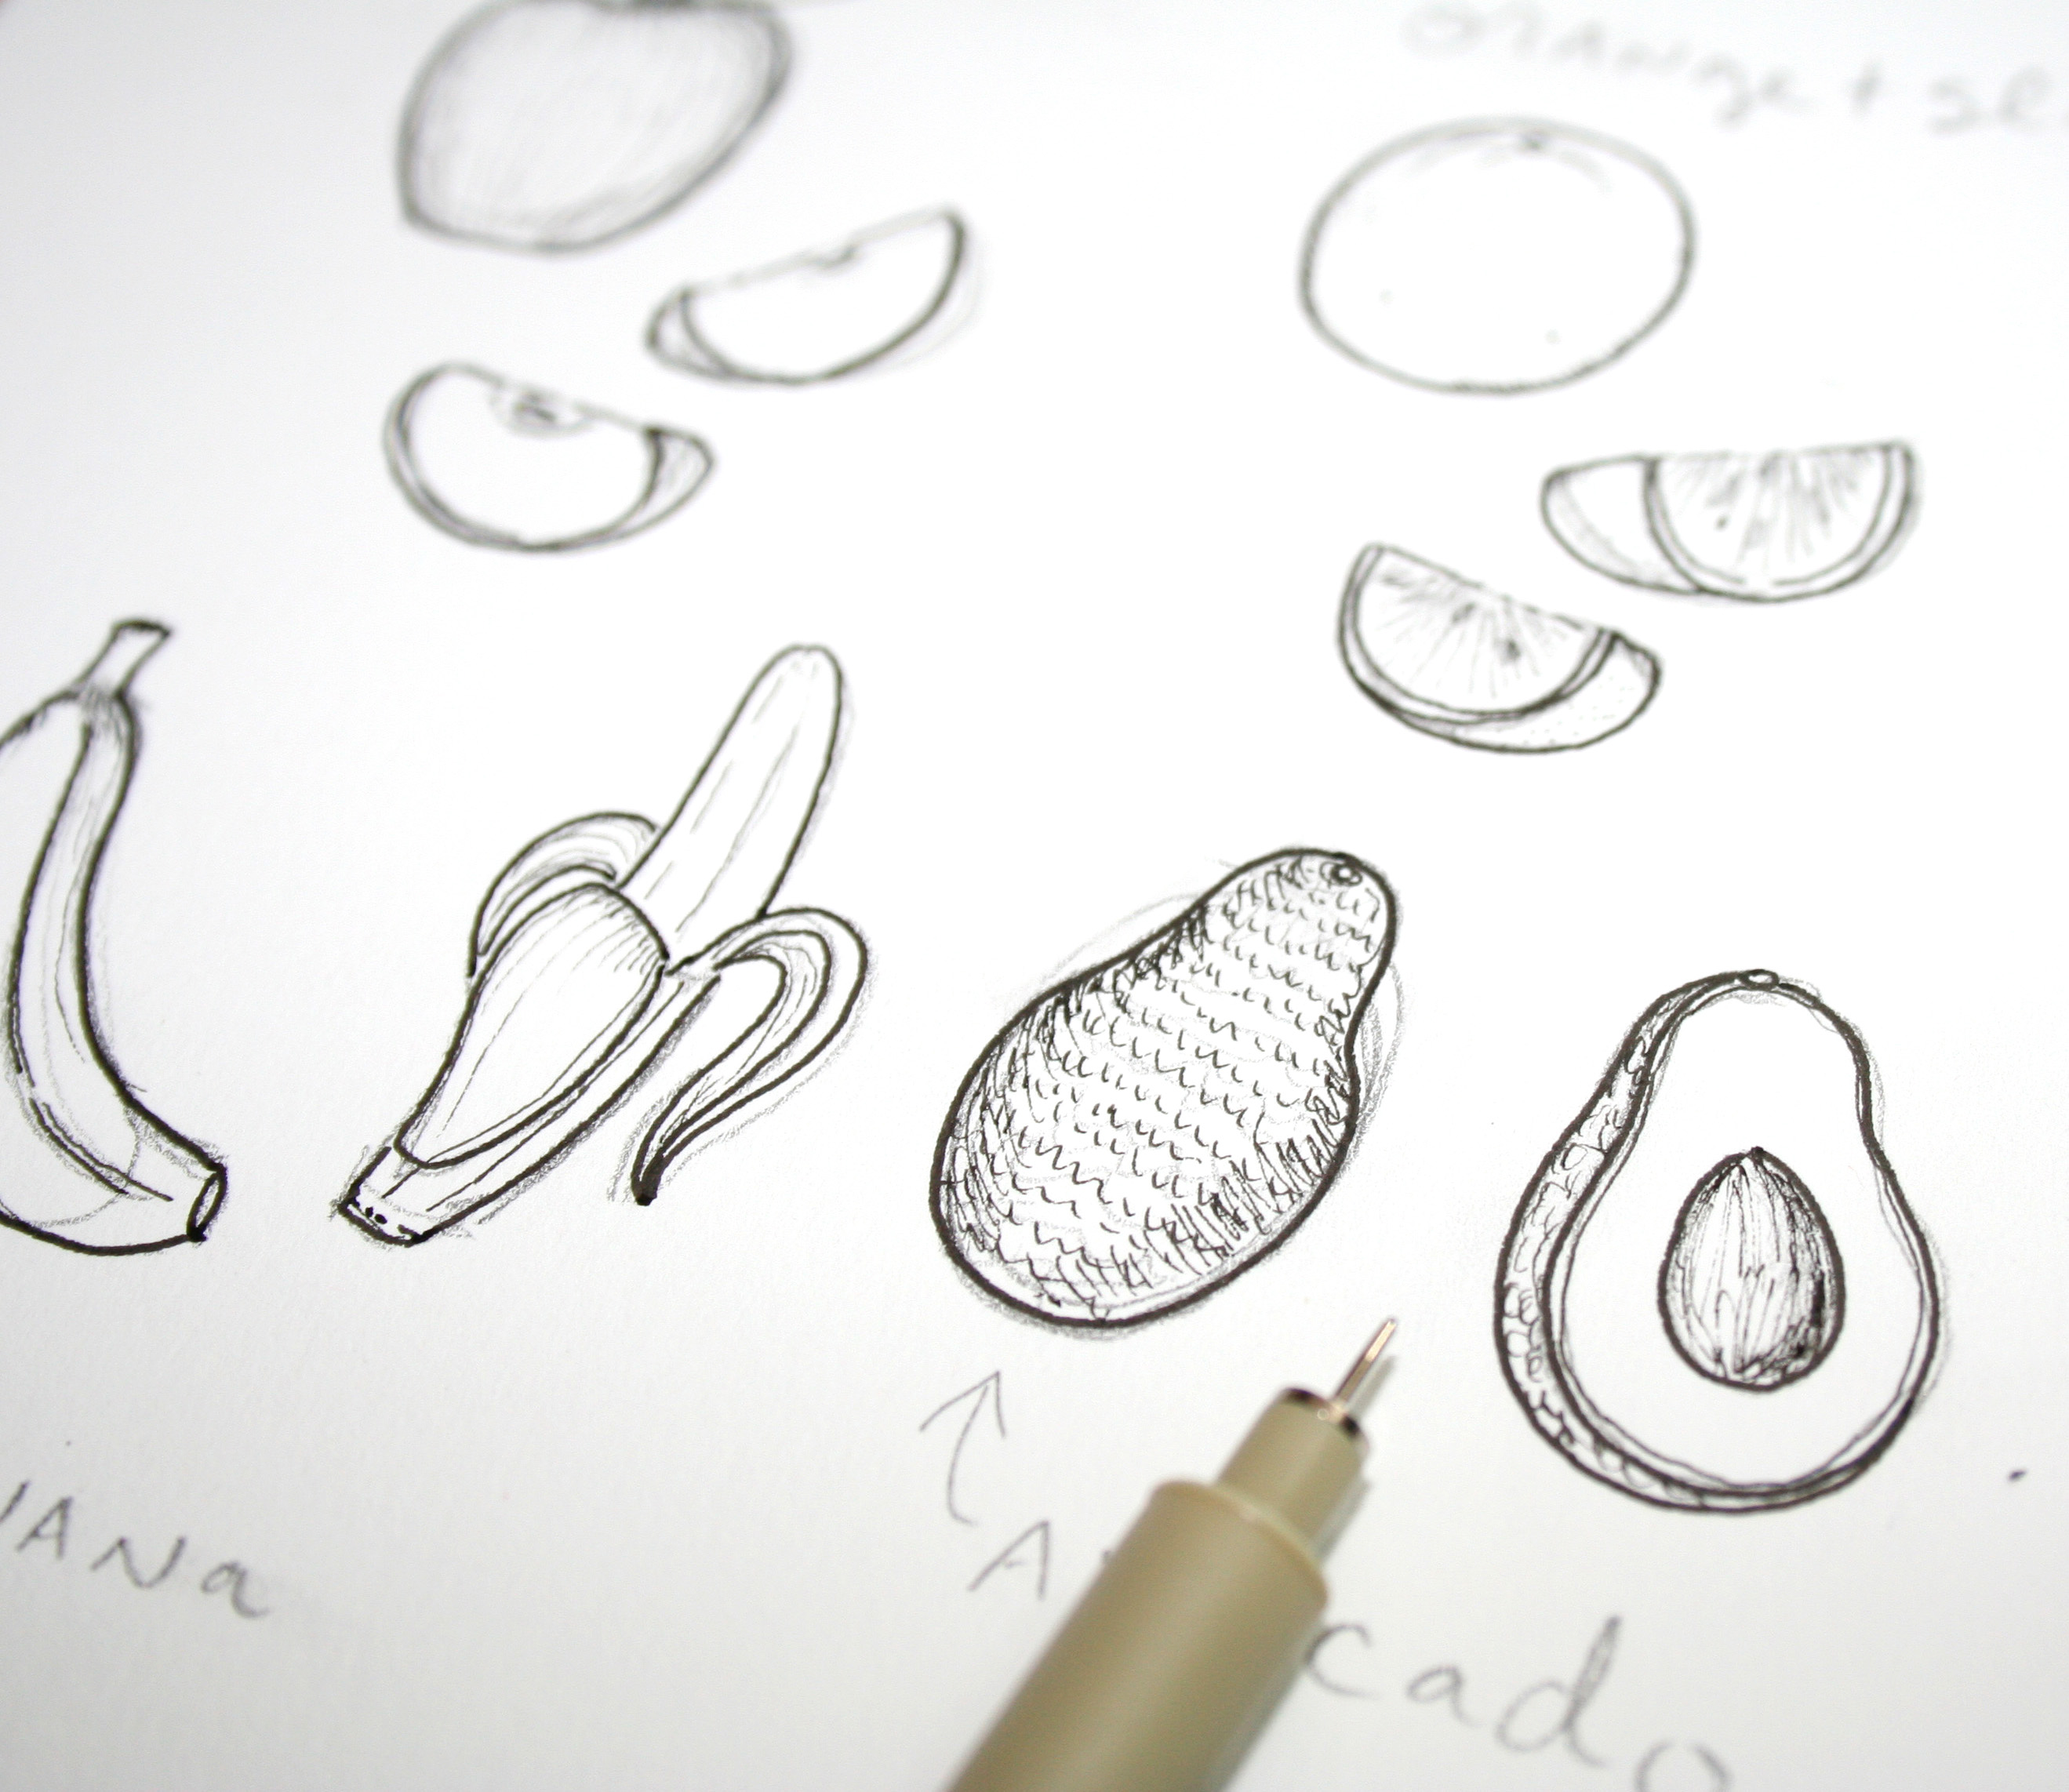 Drawn vegetable vintage To Labor: How to Fruit